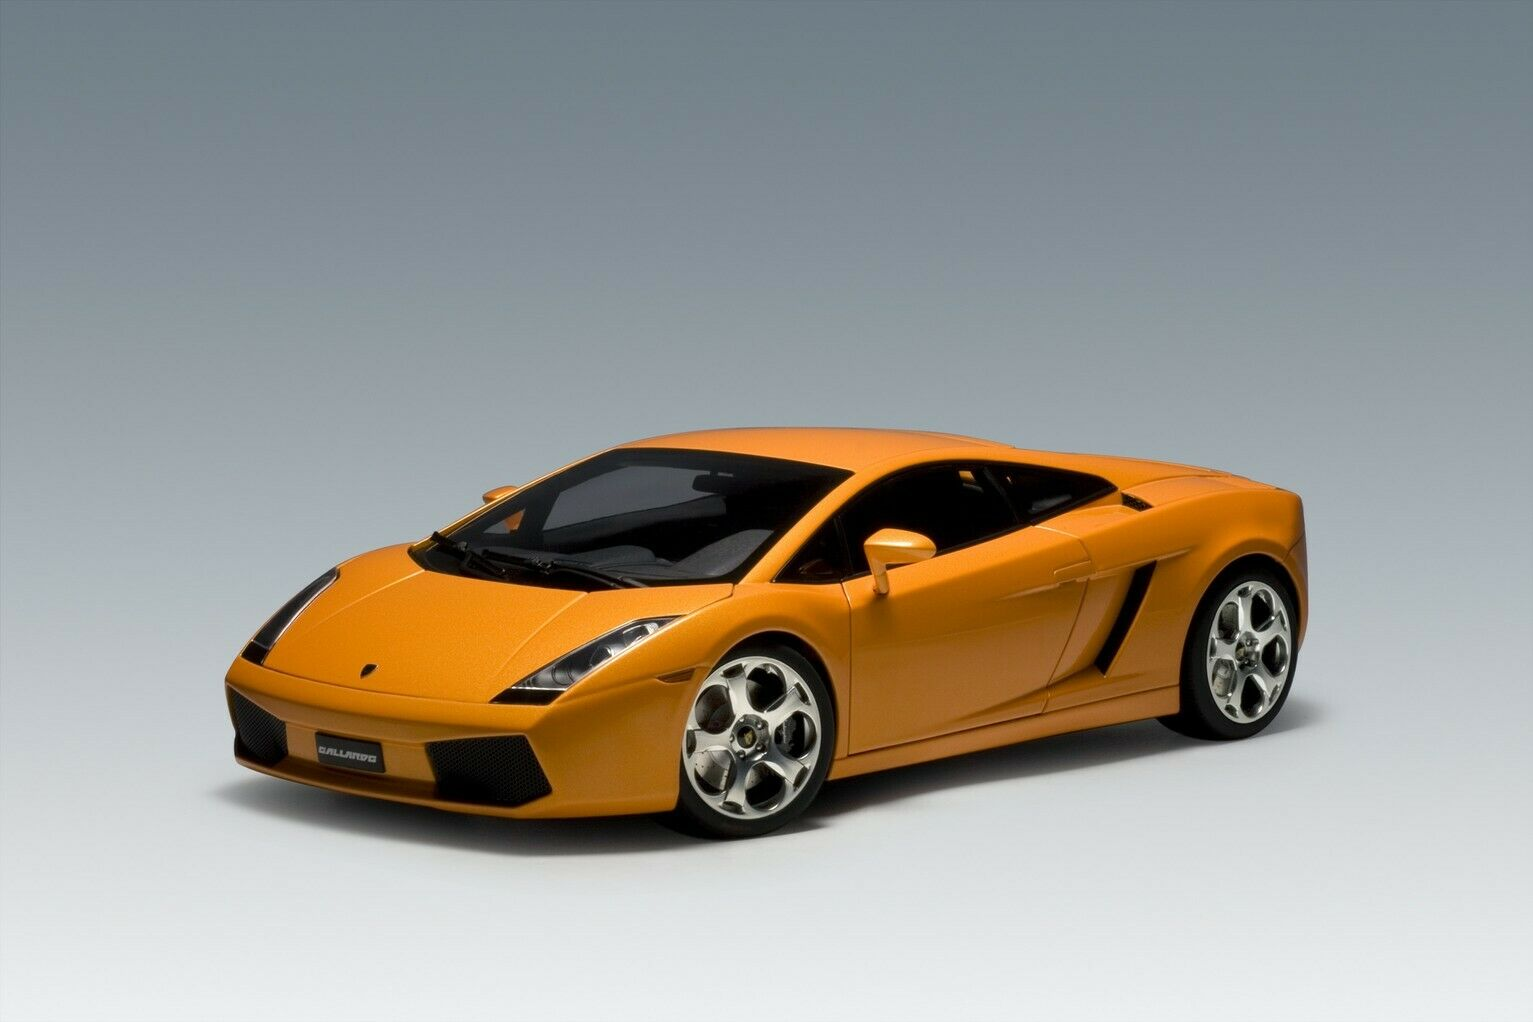 AUTOART LAMBORGHINI GALLARDO METALLIC naranja 1 12 12092 Die cast model Signature